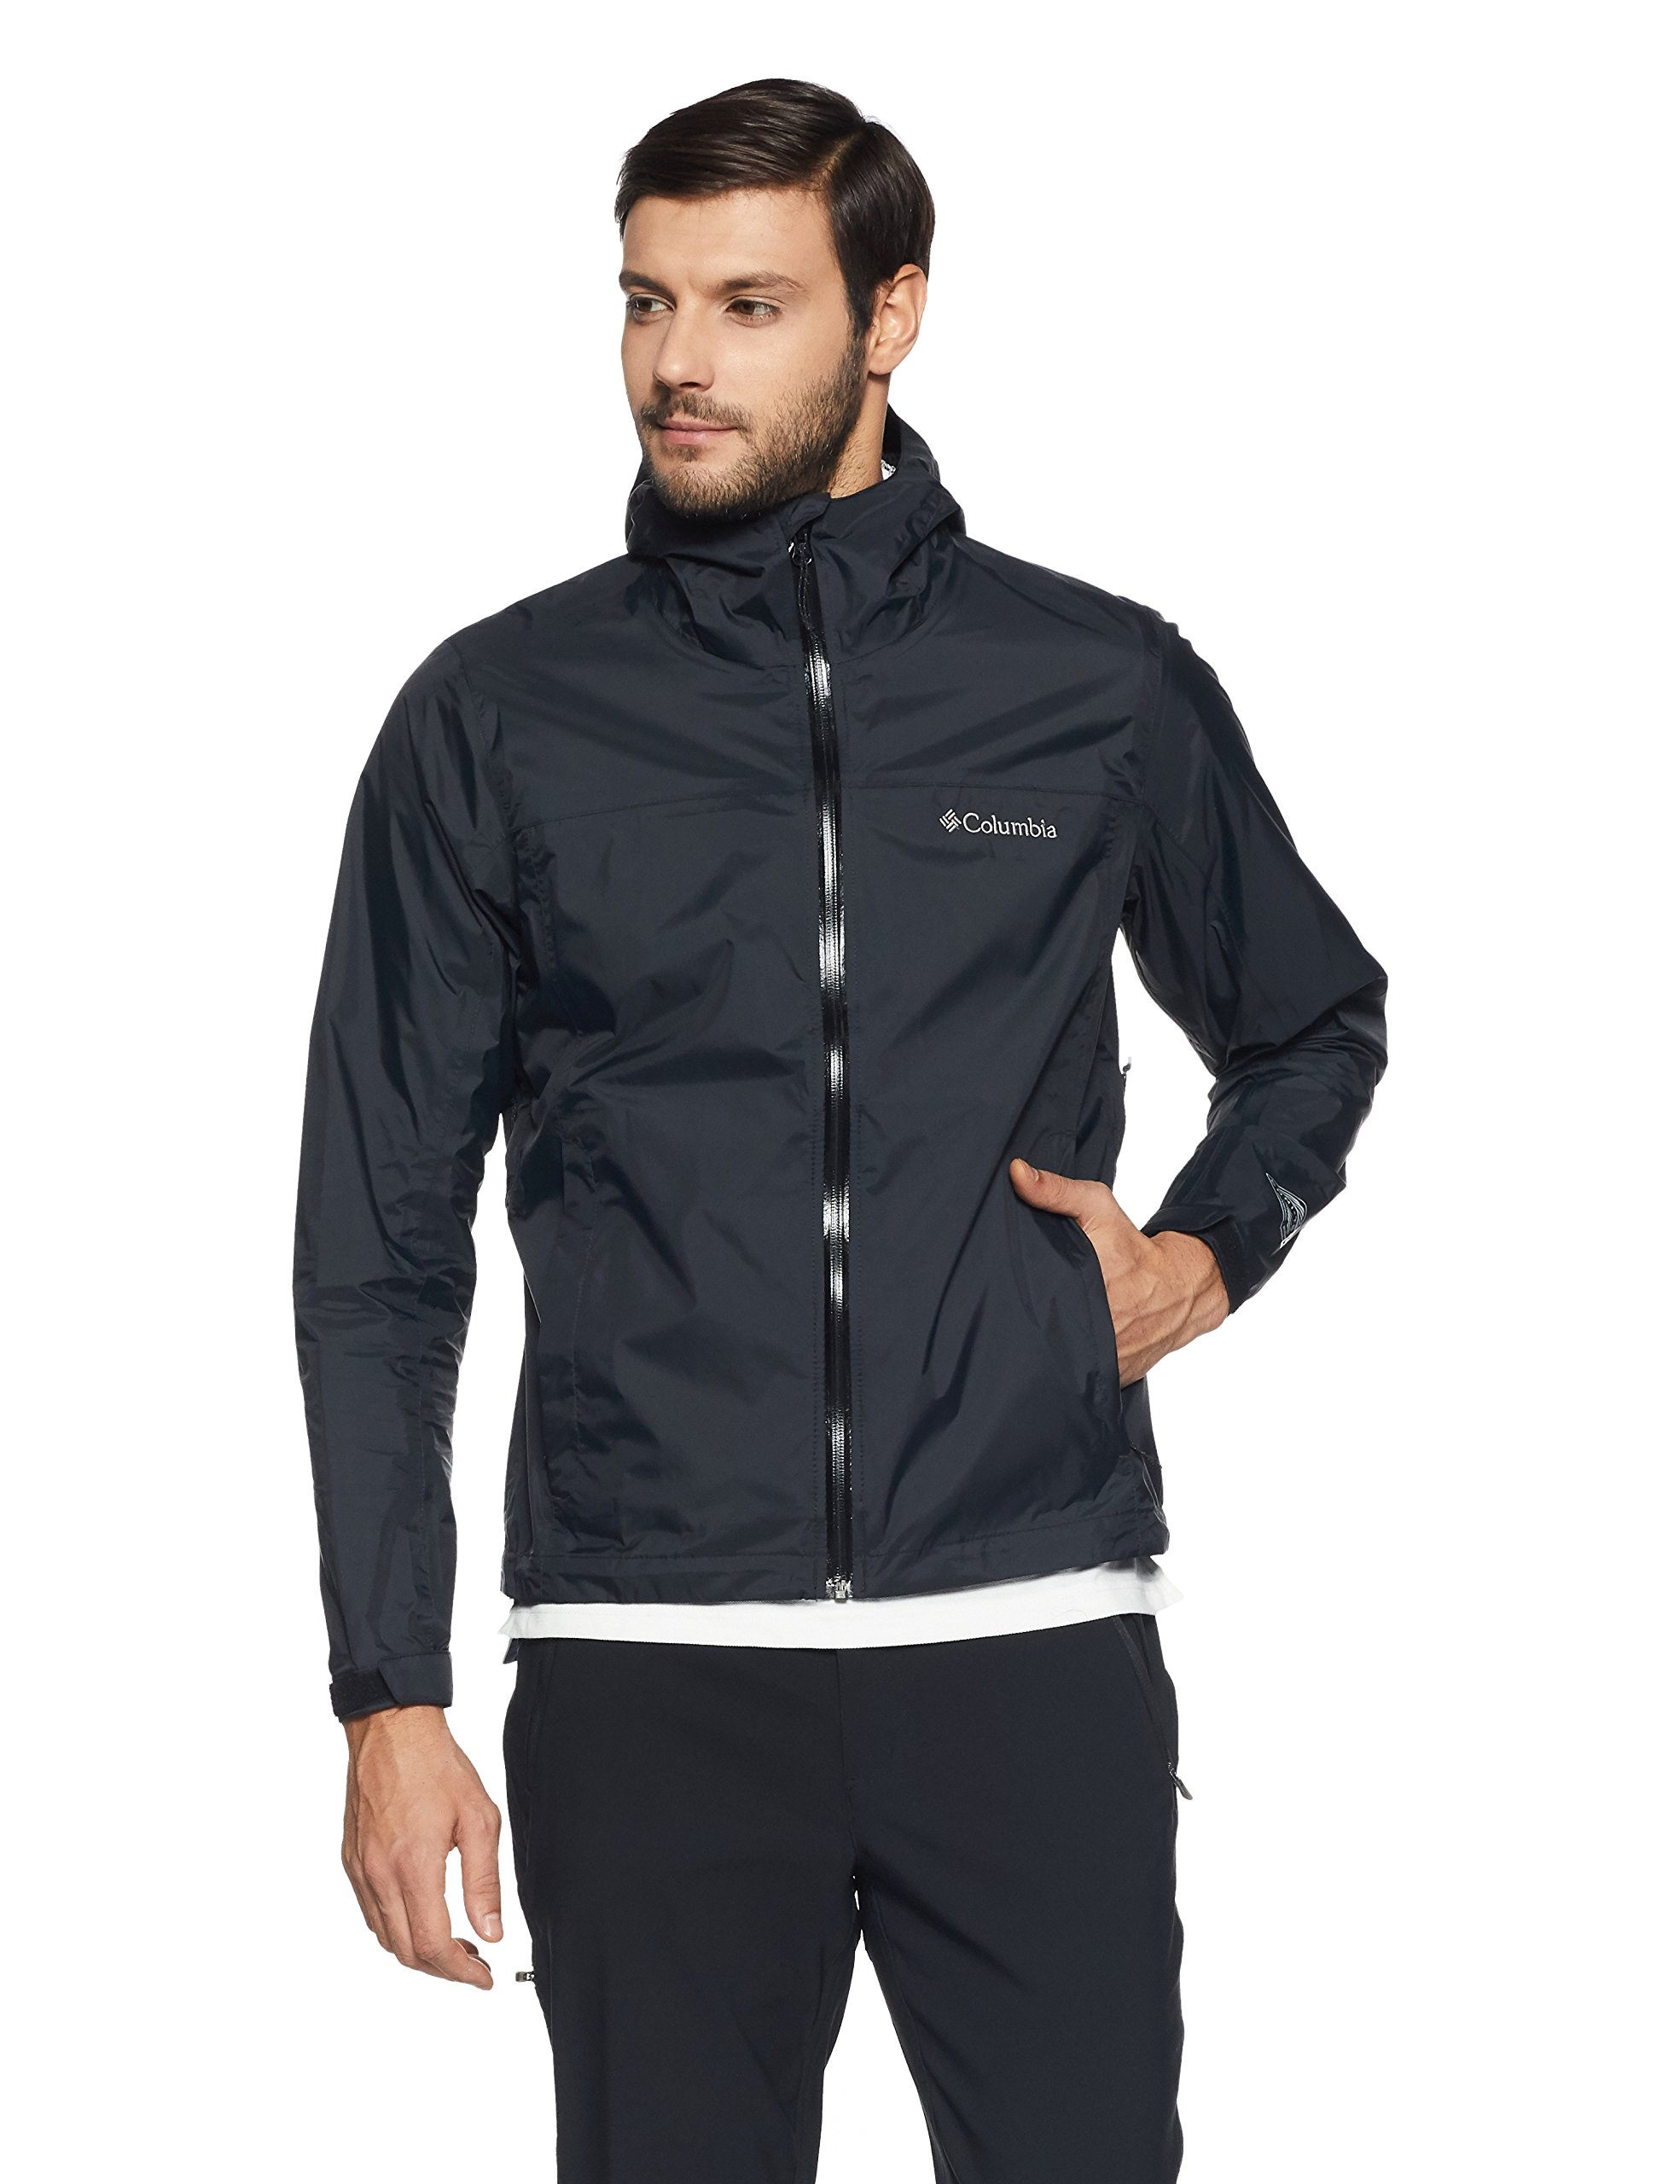 Columbia Men's Evapouration Jacket, Black, X-Large by Columbia